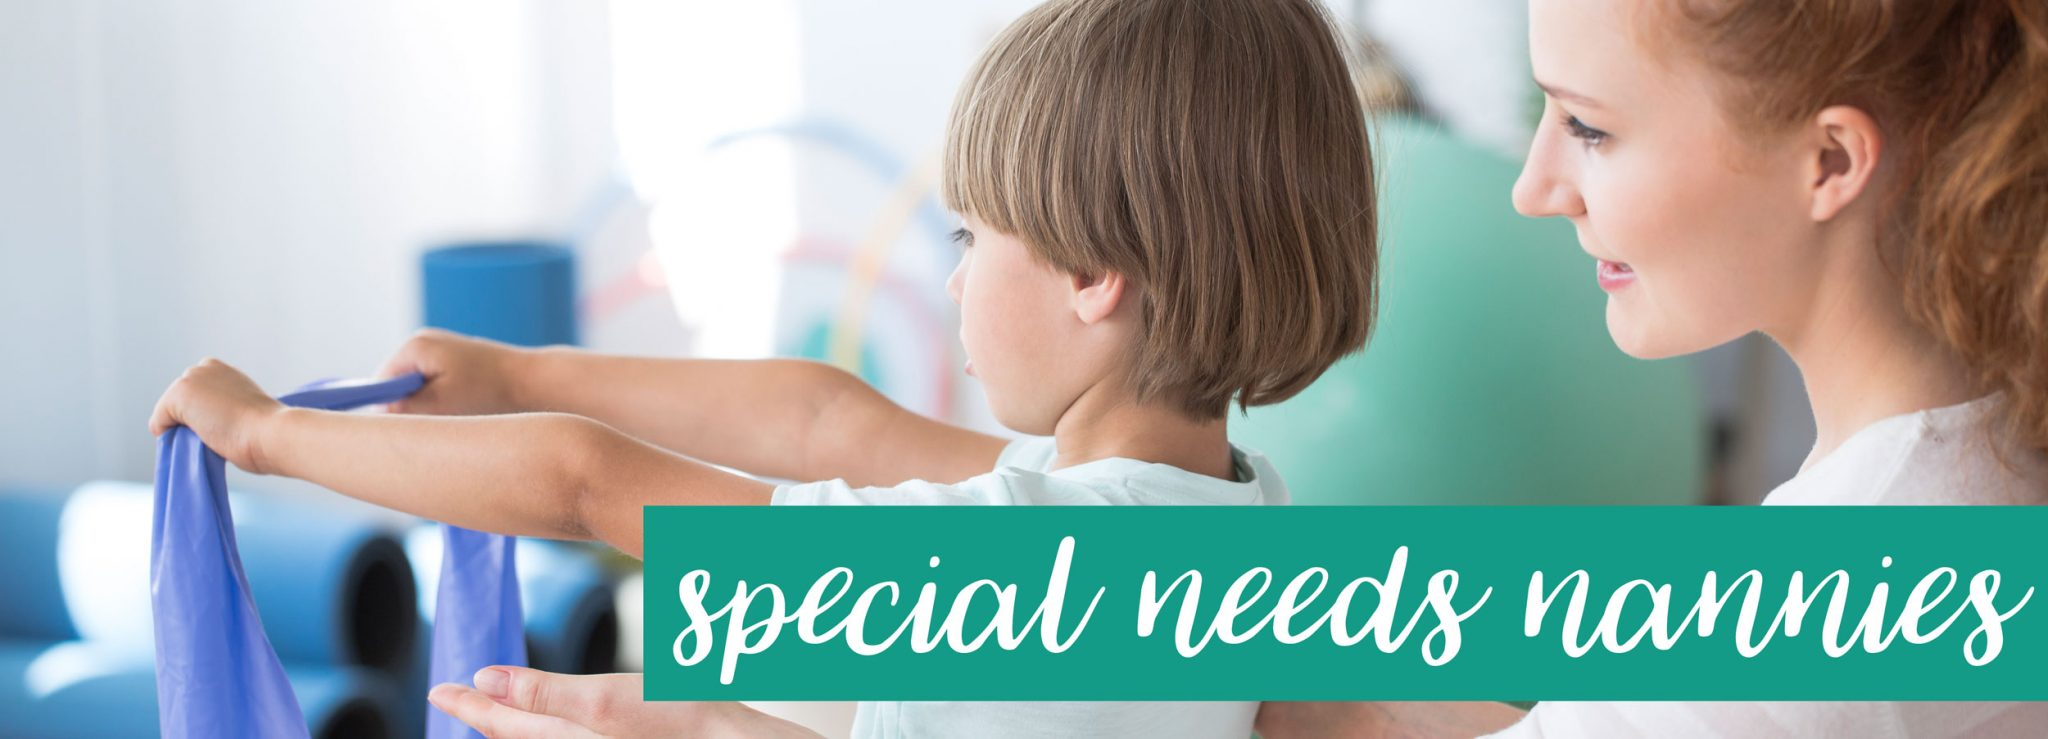 Special Needs Nannies and Childcare Specialists for Children with Special Needs - placement services from Capitol Park Nannies, Sacramento-based Nanny Agency